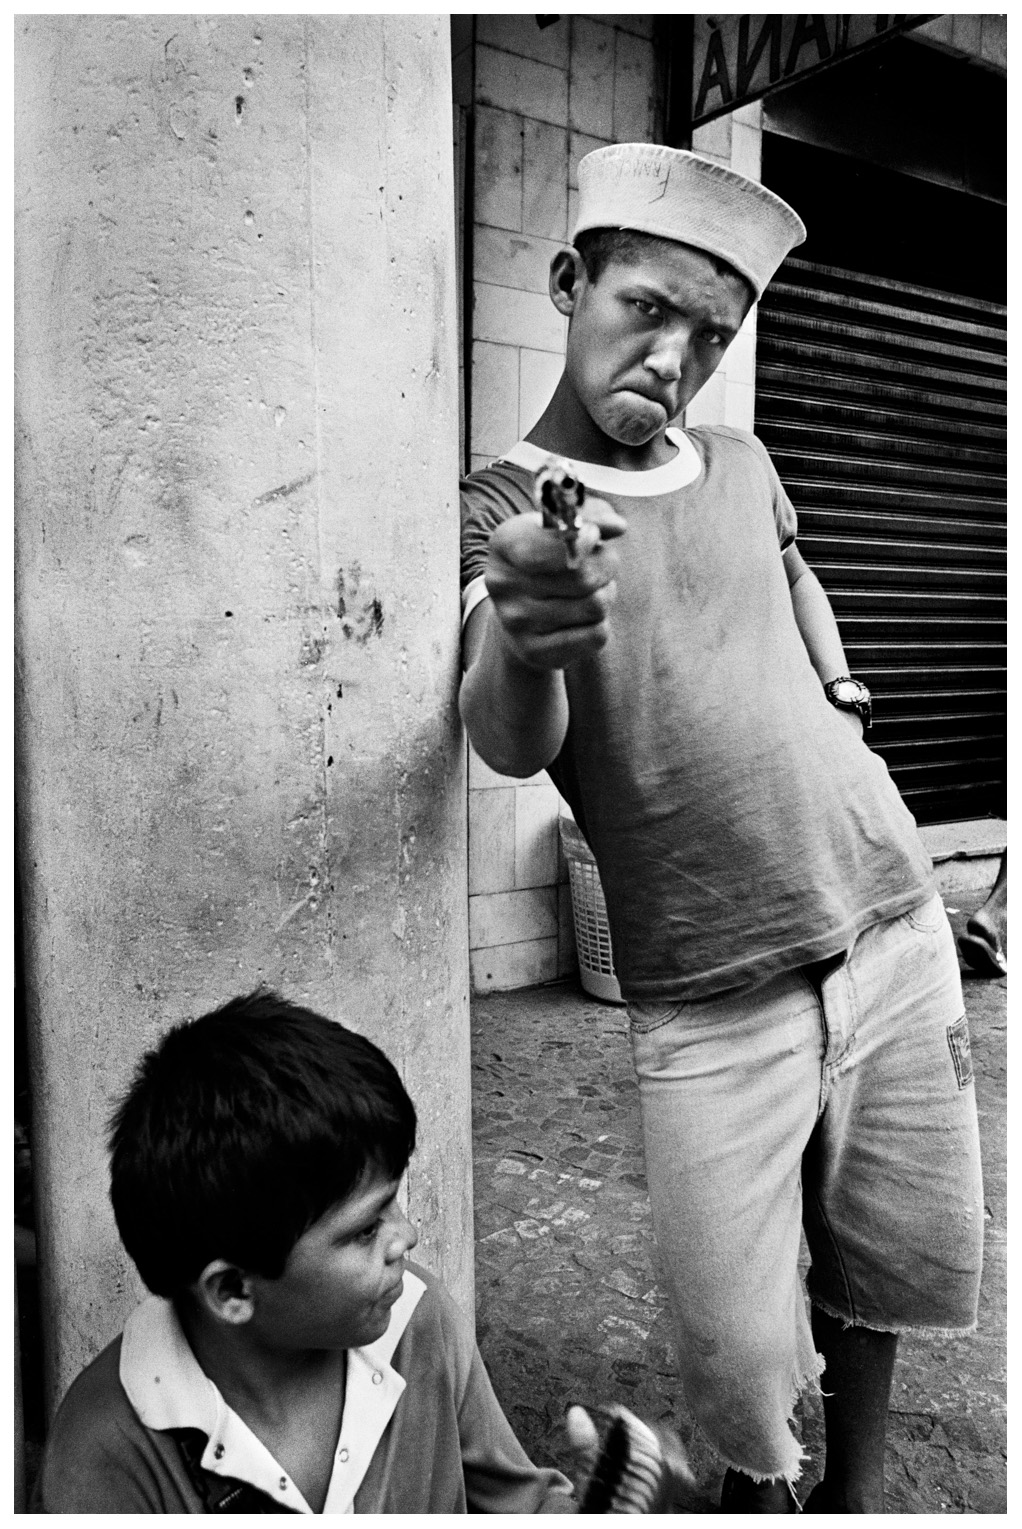 "Every six hours a child dies on the streets of Brazil. The ""meninho de rua"" (child of the street) is the symbol of Brazil's degradation. There are around 12 million street children in Brazil. These children are reflections of civil society's cruelty to its most fragile members.